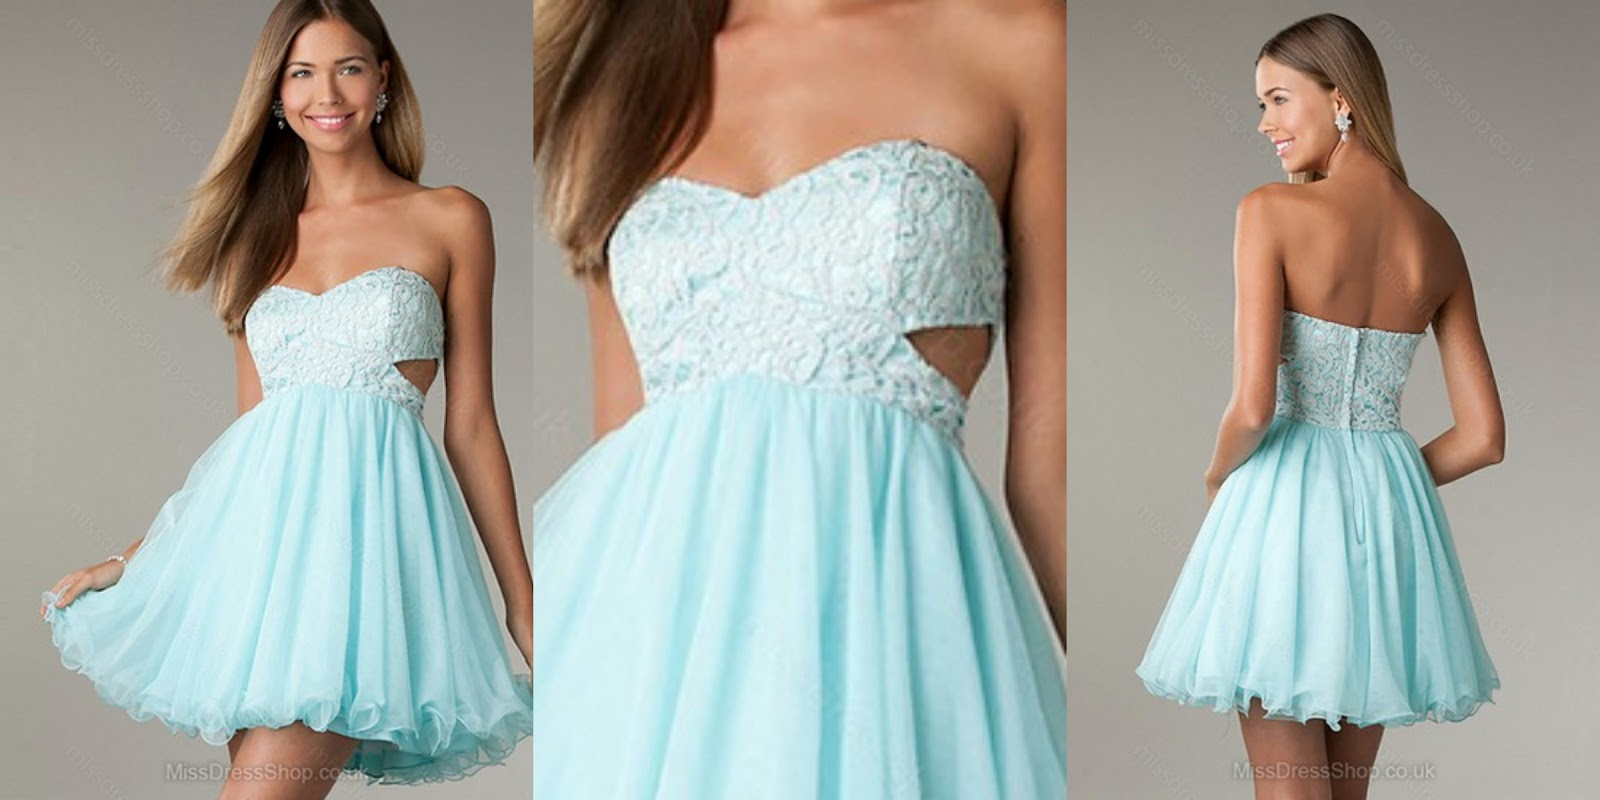 Cutest Prom Dresses Under $100 | misskatv.com: Cutest Prom Dresses ...